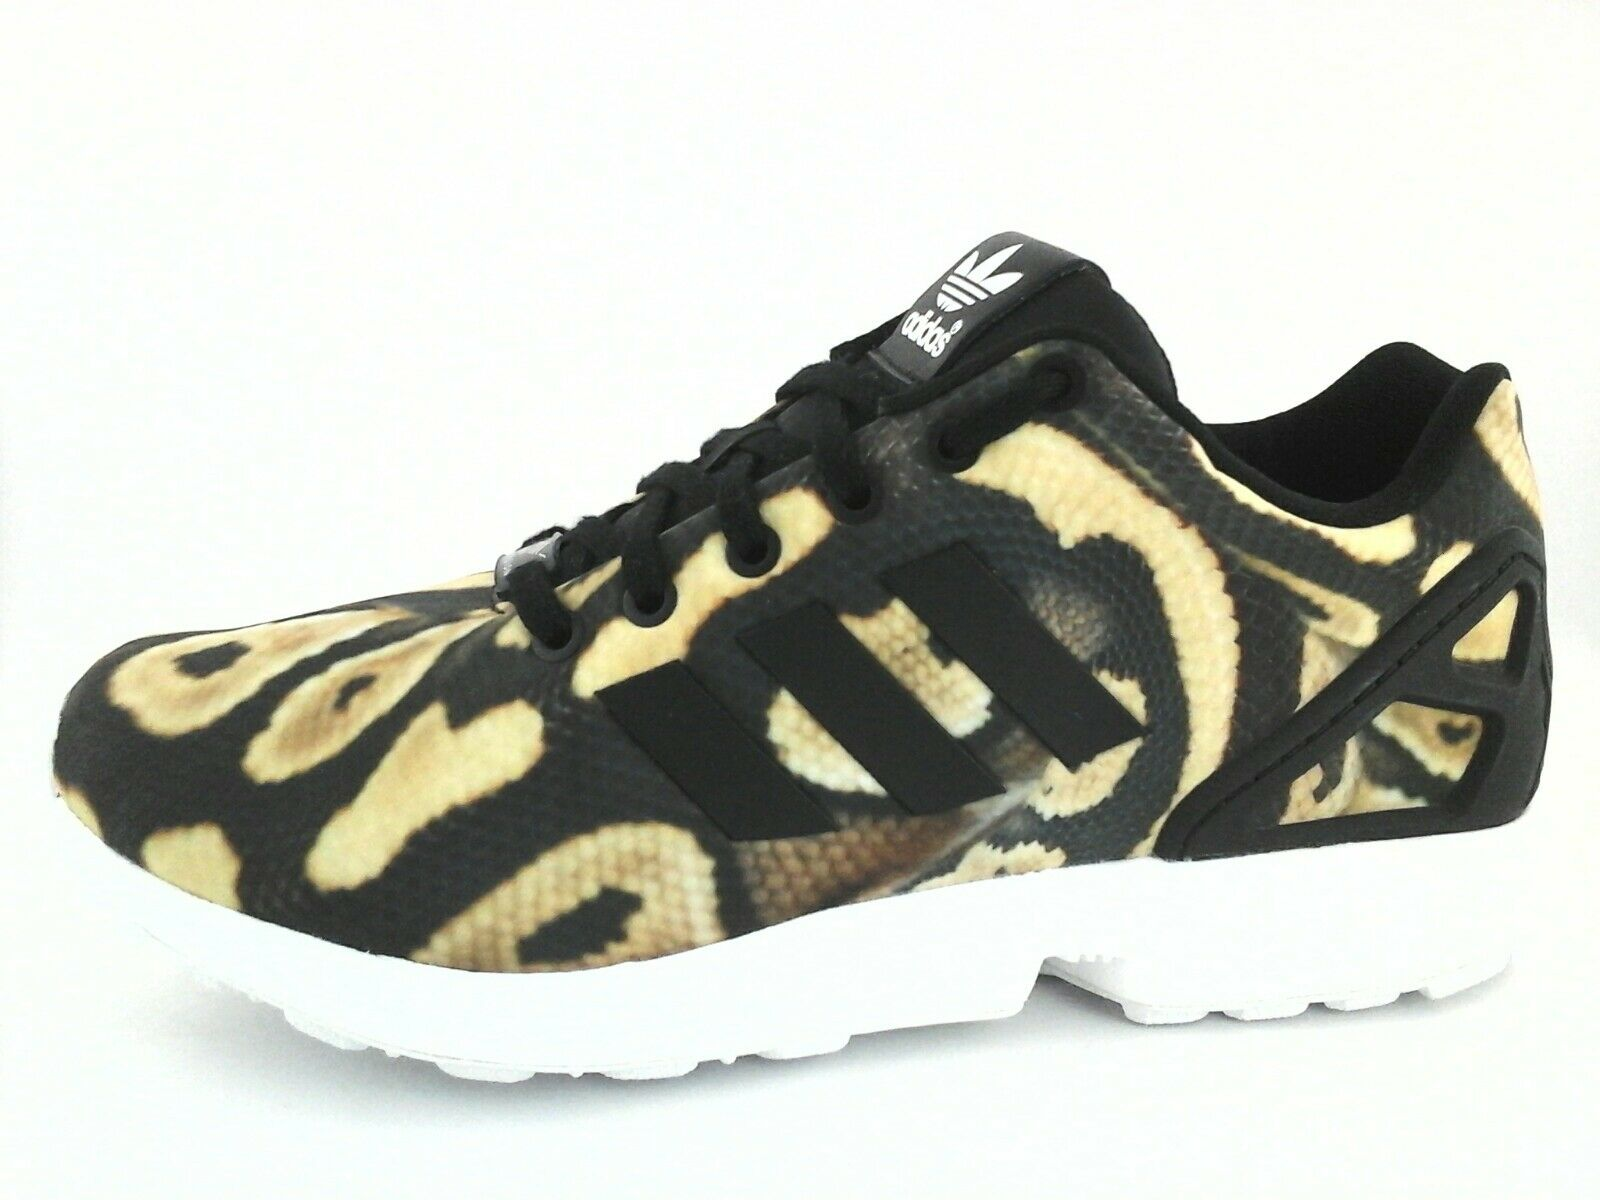 uk availability d546d 31e54 ... order adidas sneakers python snake zx flux shoes s77310 torsion black  tan womens new 9ad57 eb4bb